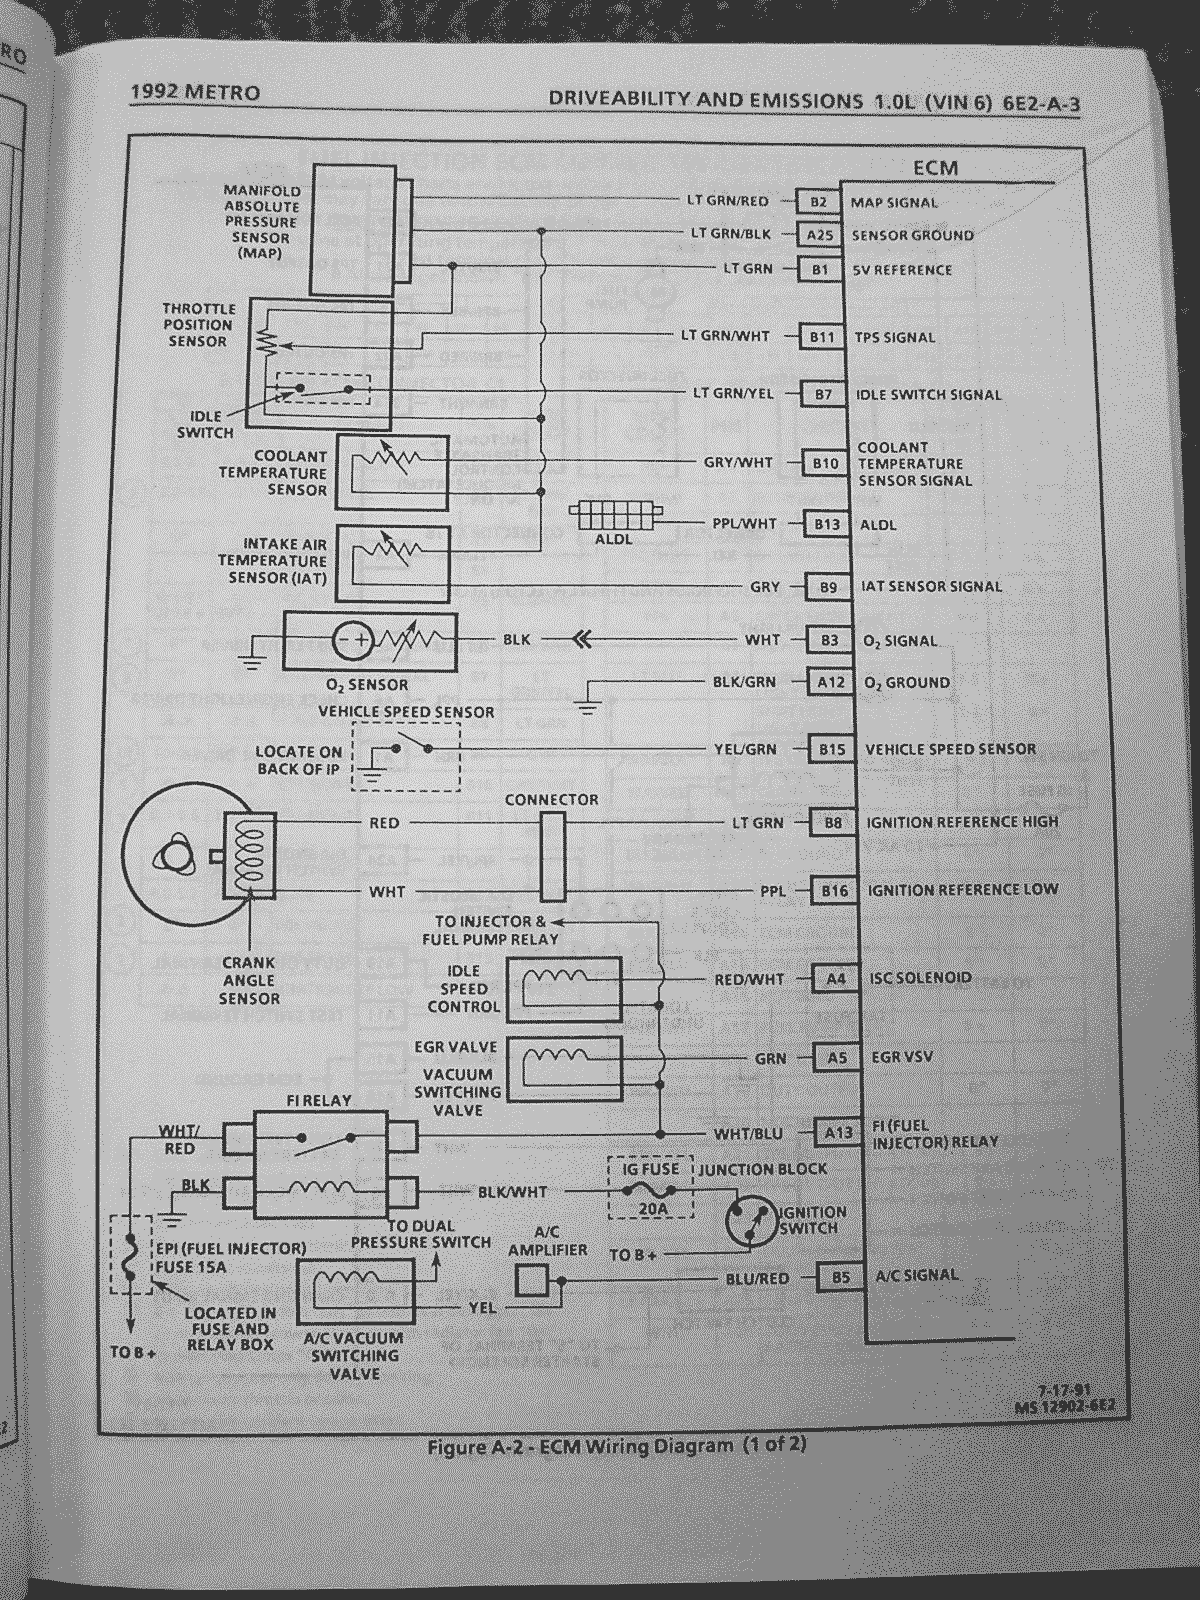 Geo Metro Radio Wiring Diagram In Addition 1995 as well Chevy 2 8l Engine Diagram furthermore Land Rover Discovery Interior Fuse Box Diagram in addition 2003 Chevrolet Impala Underhood Under Fuse Box Diagram as well Wiring Diagram 1995 Suzuki Sidekick. on 2001 chevy prizm fuse box diagram